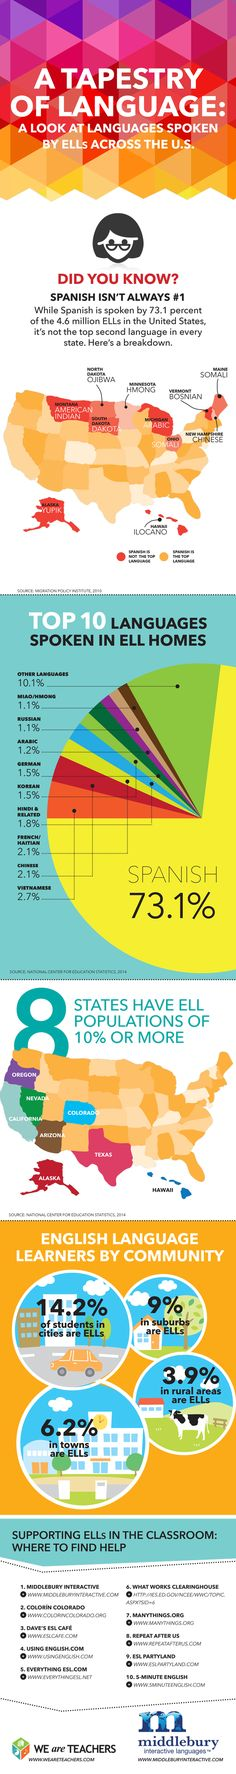 Middlebury Interactive Languages|A Look at English Language Learners Across the U.S|This article and its infographics detail the most commonly-spoken languages by ELLs, both across the country, and by state.